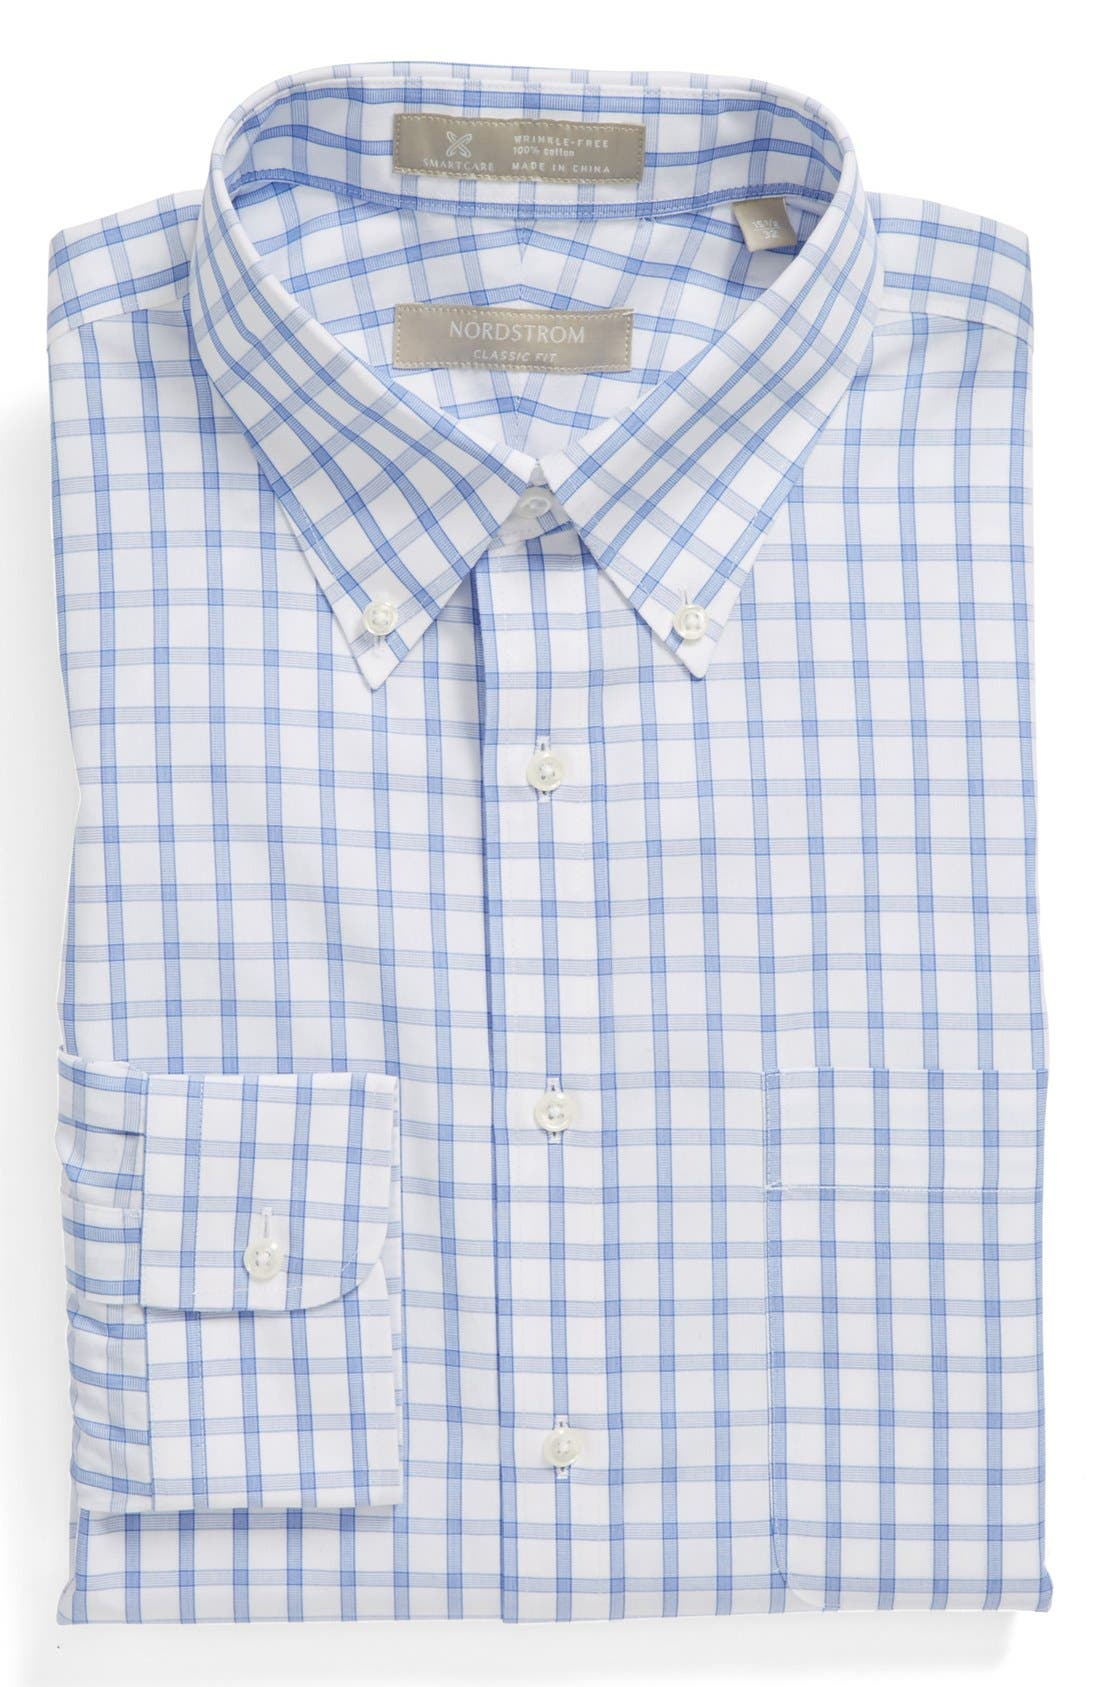 Main Image - Nordstrom Smartcare™ Wrinkle Free Classic Fit Dress Shirt